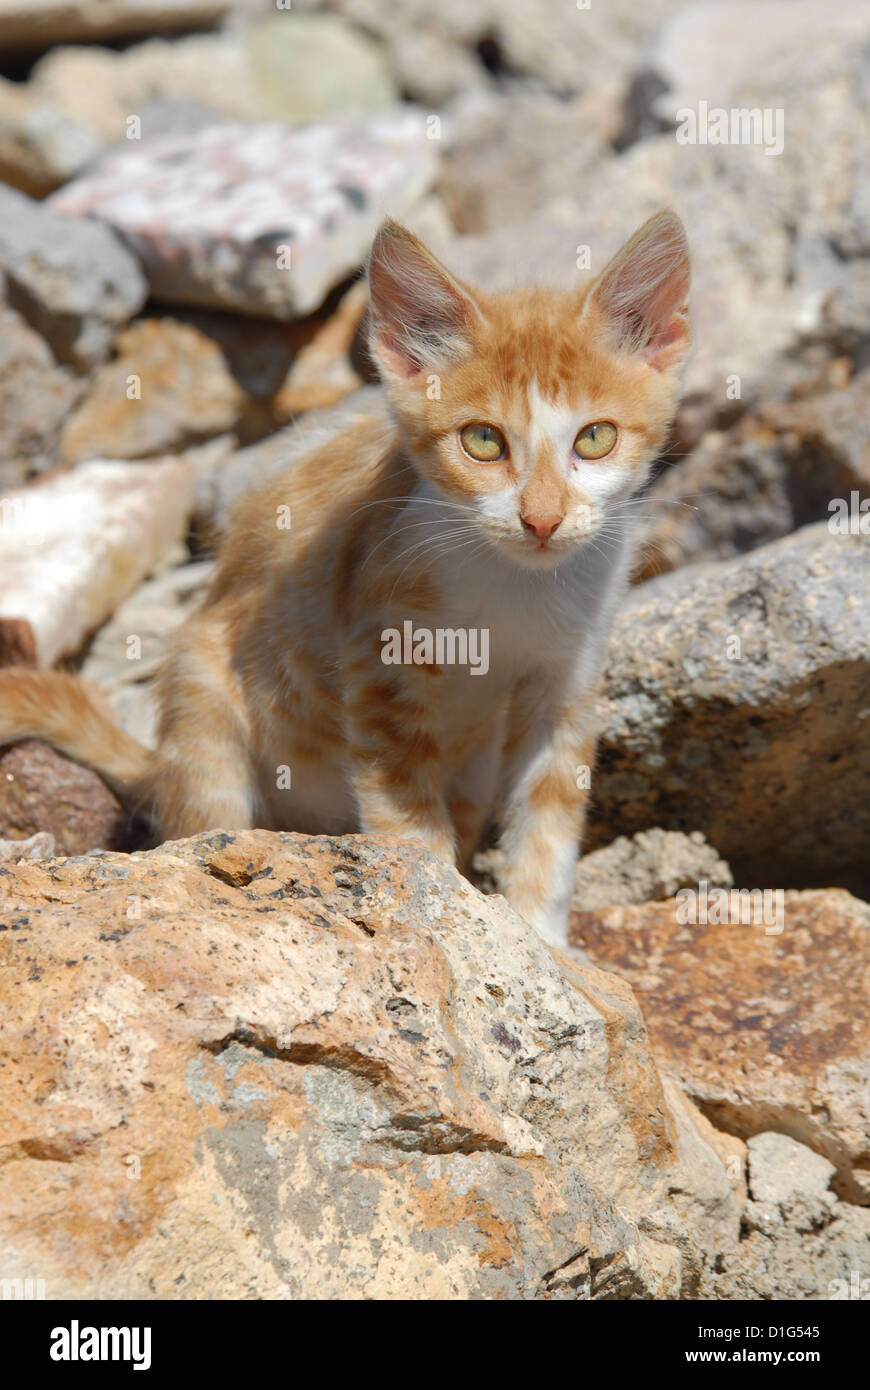 Red Tabby and White, portrait, Greece, Dodecanese Island, Non-pedigree Shorthair, felis silvestris forma catus, Stock Photo